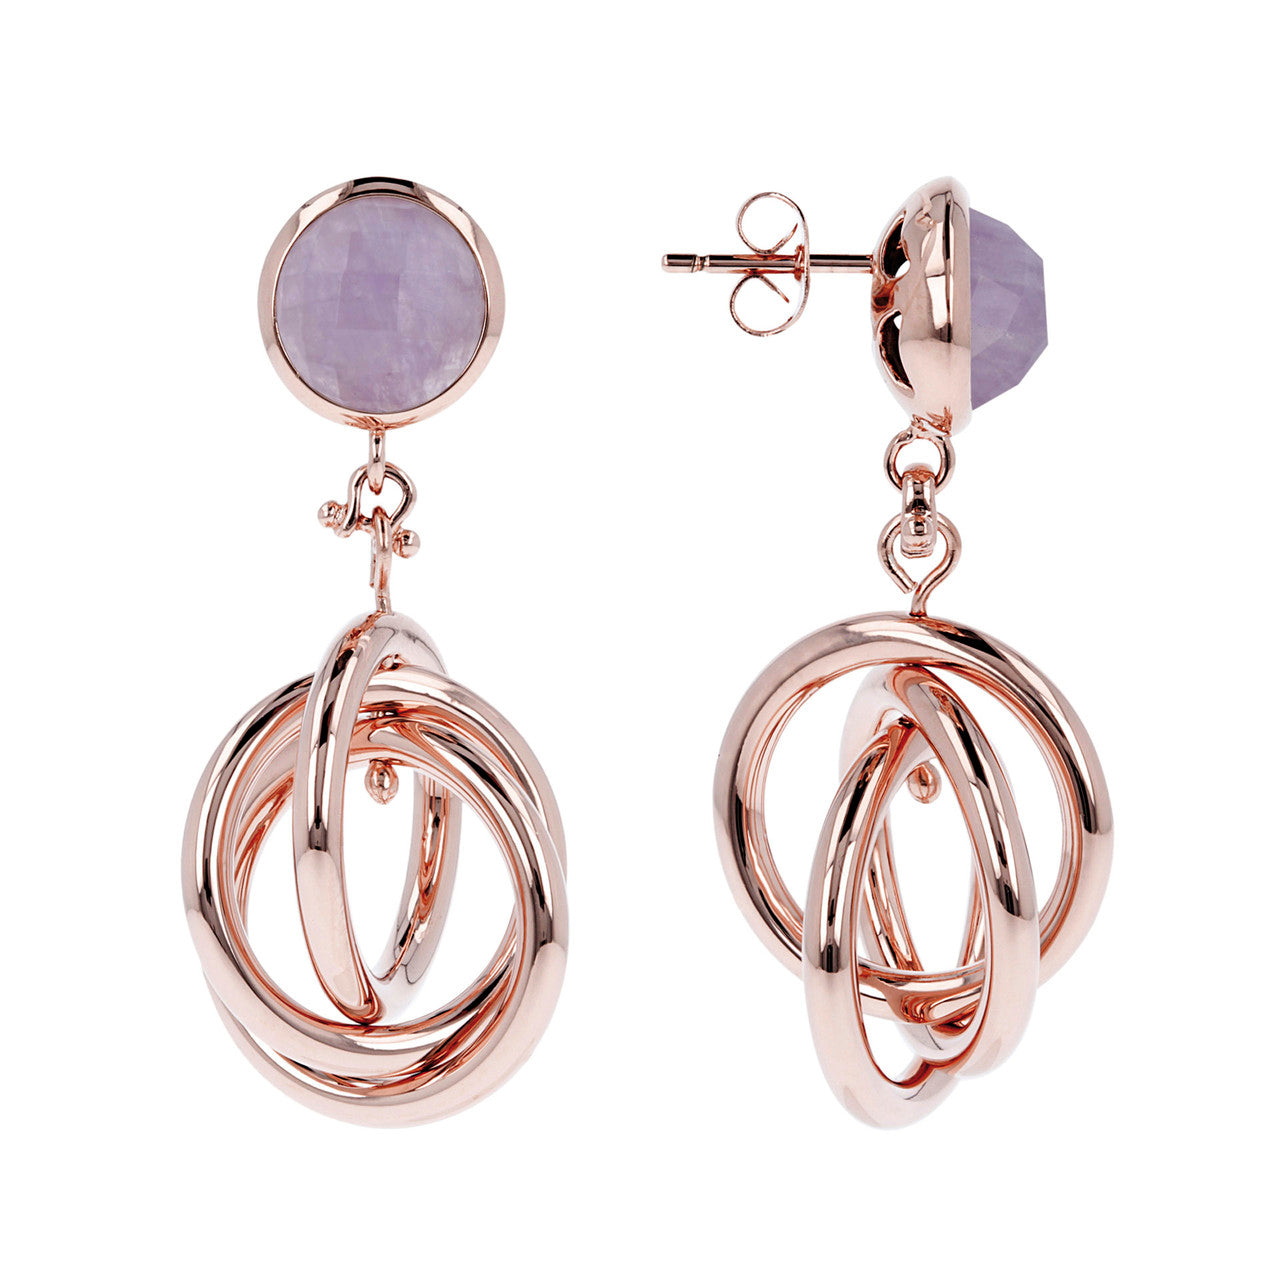 circle dangle earrings front and side